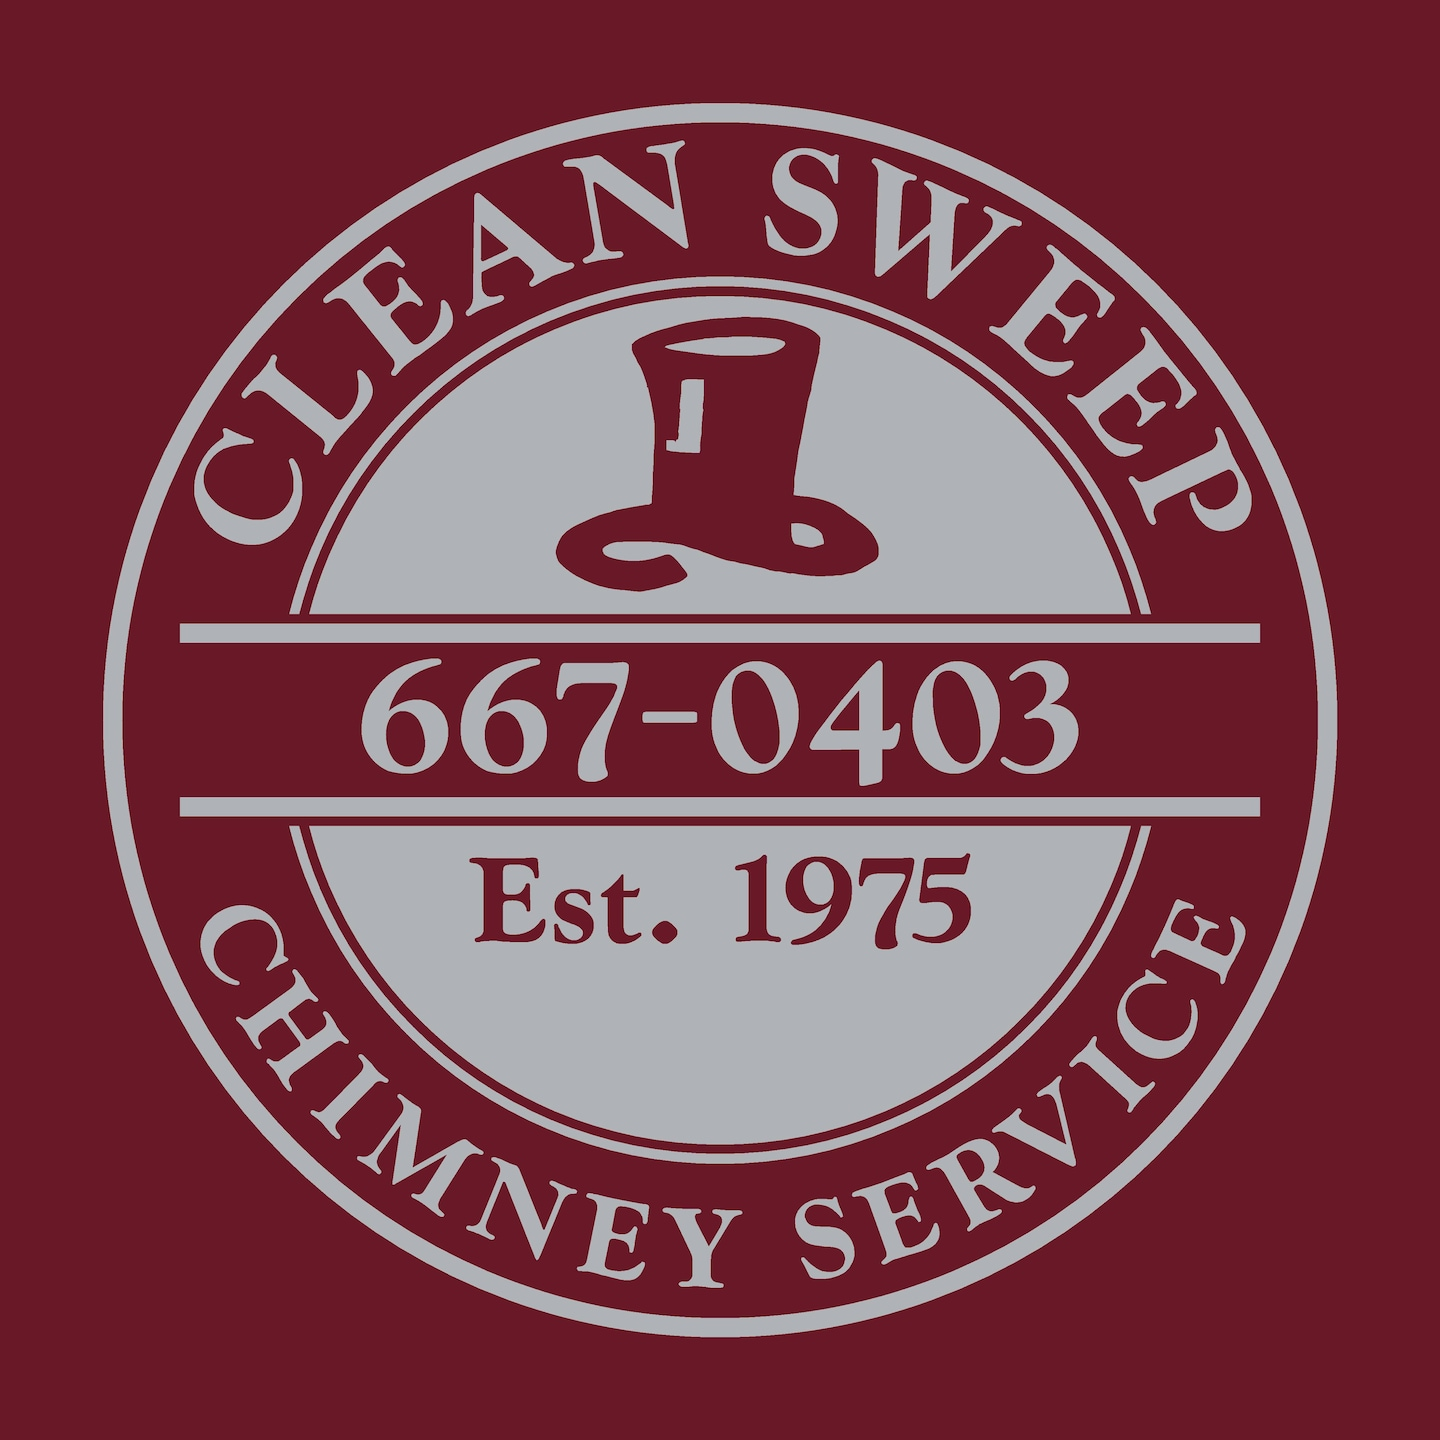 Clean sweep Chimney Service